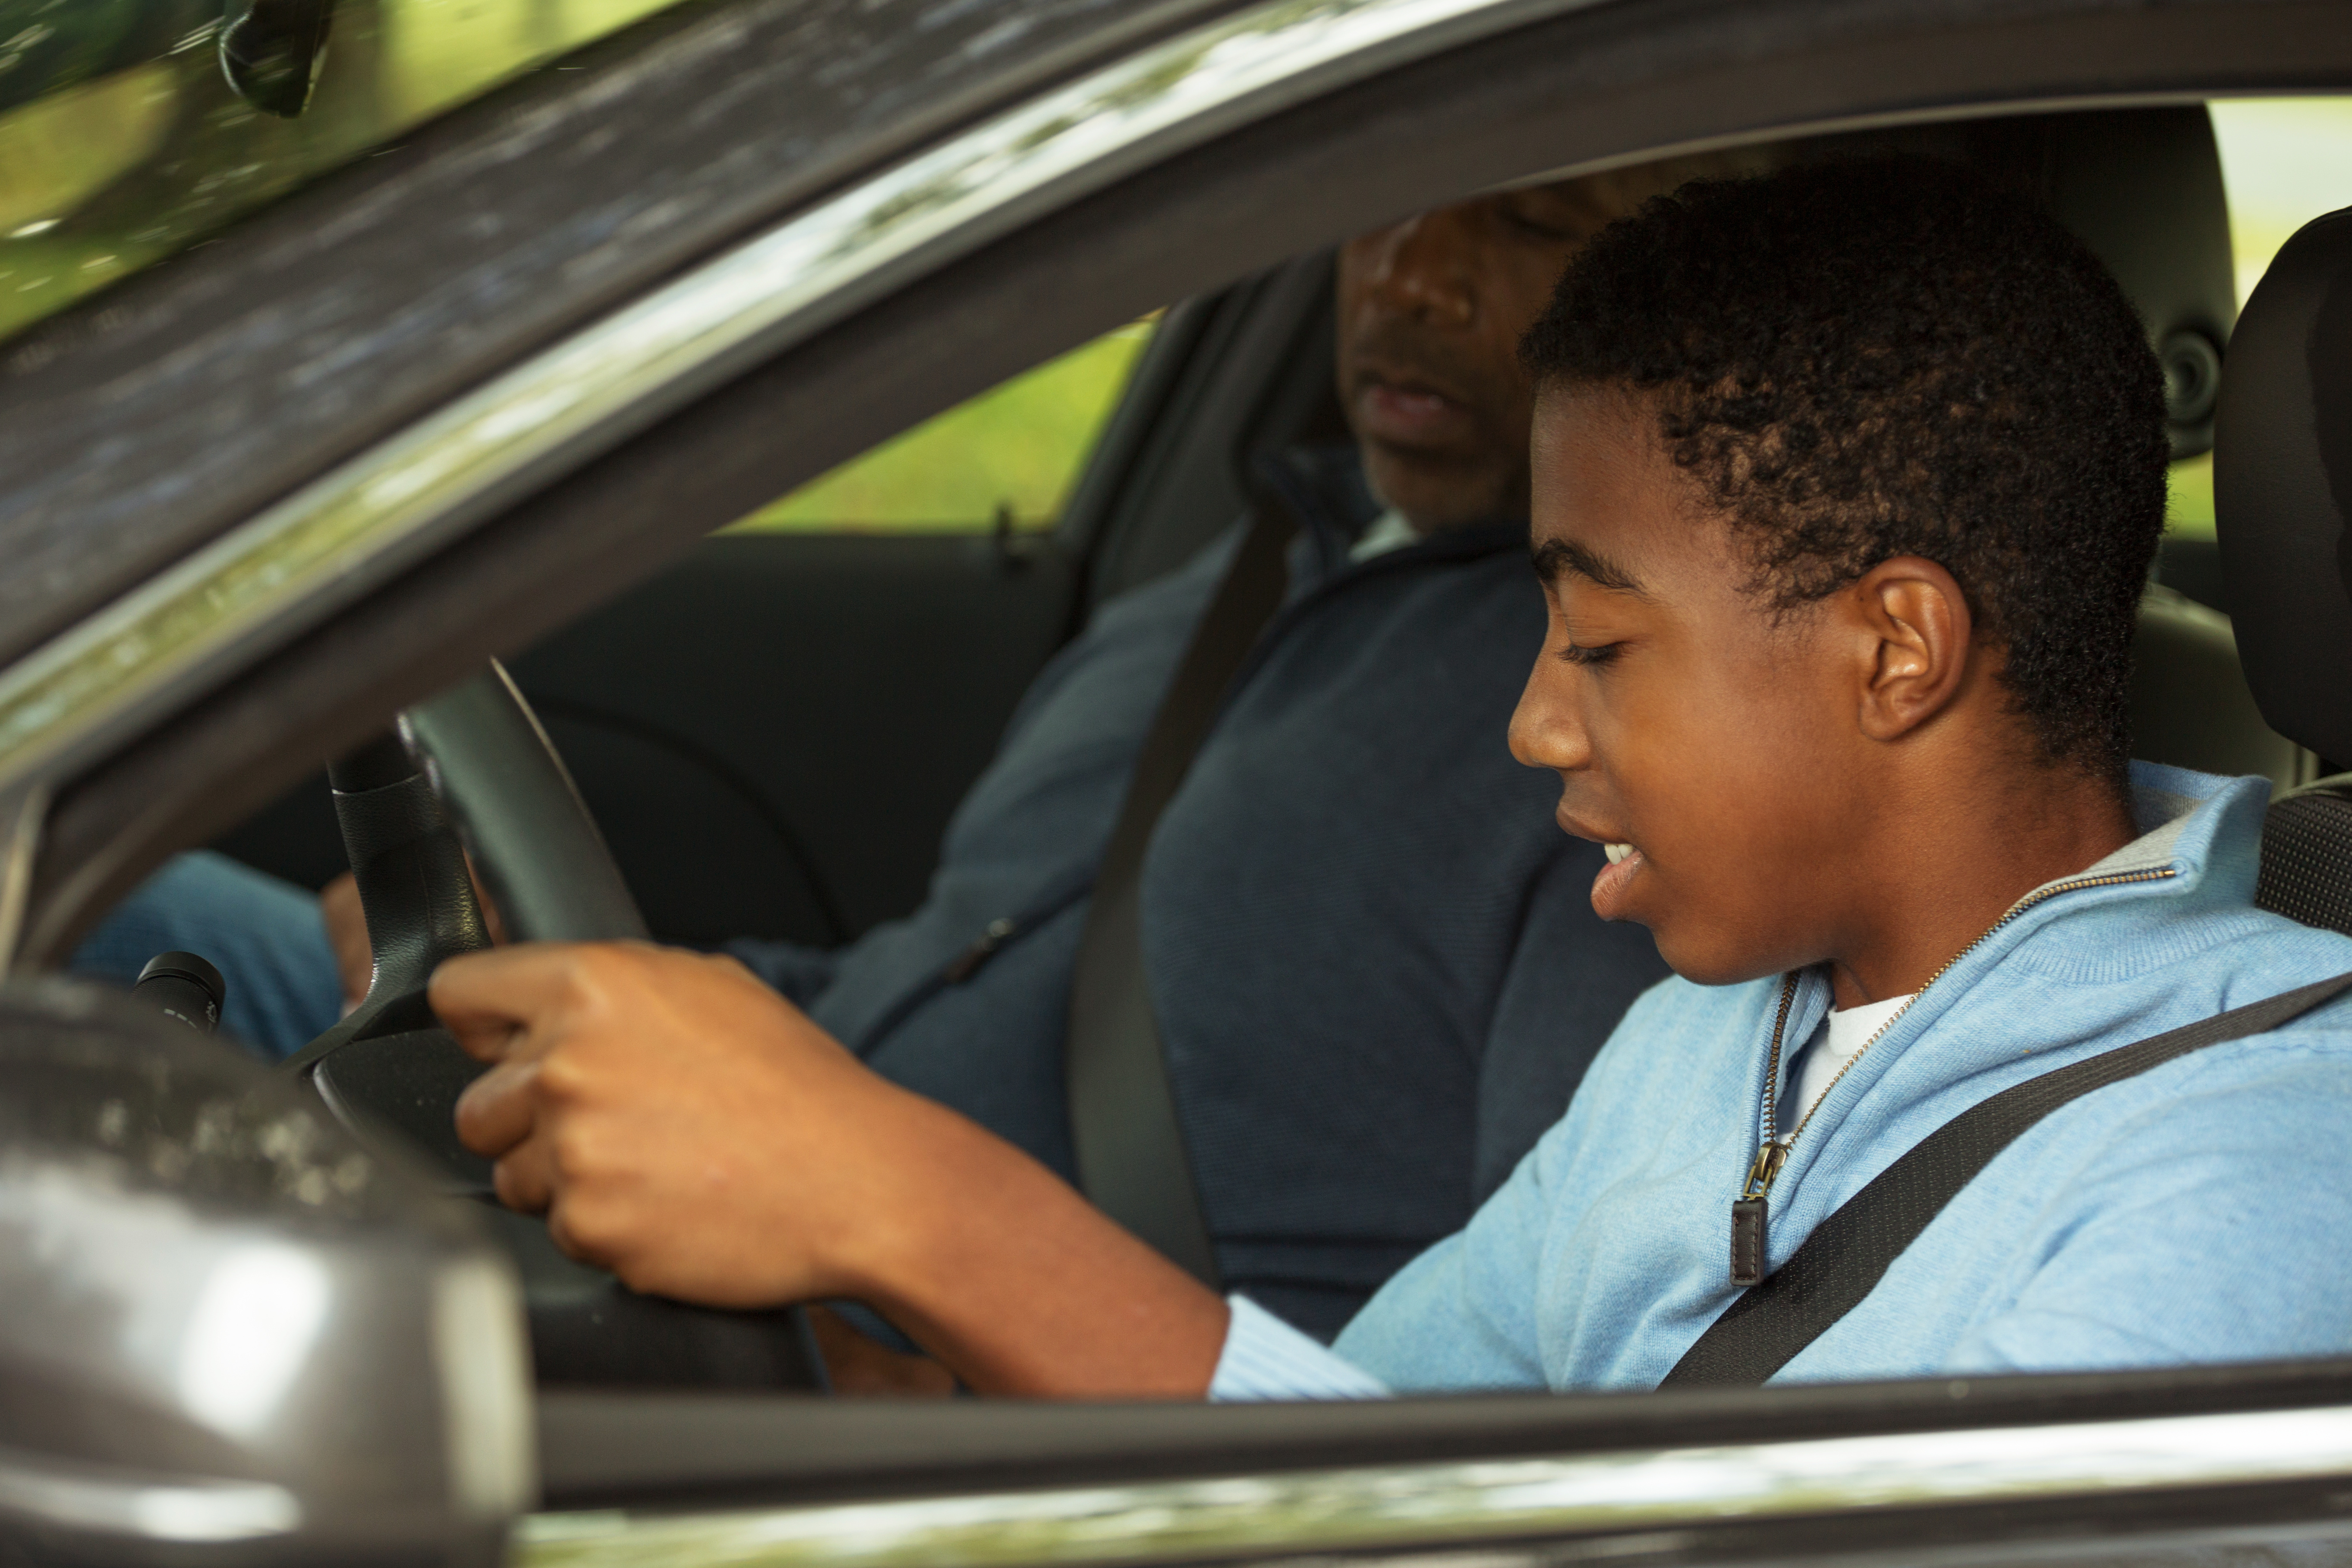 A Once Newly Licensed Ways Is Driver Your Save Money 4 To Teen